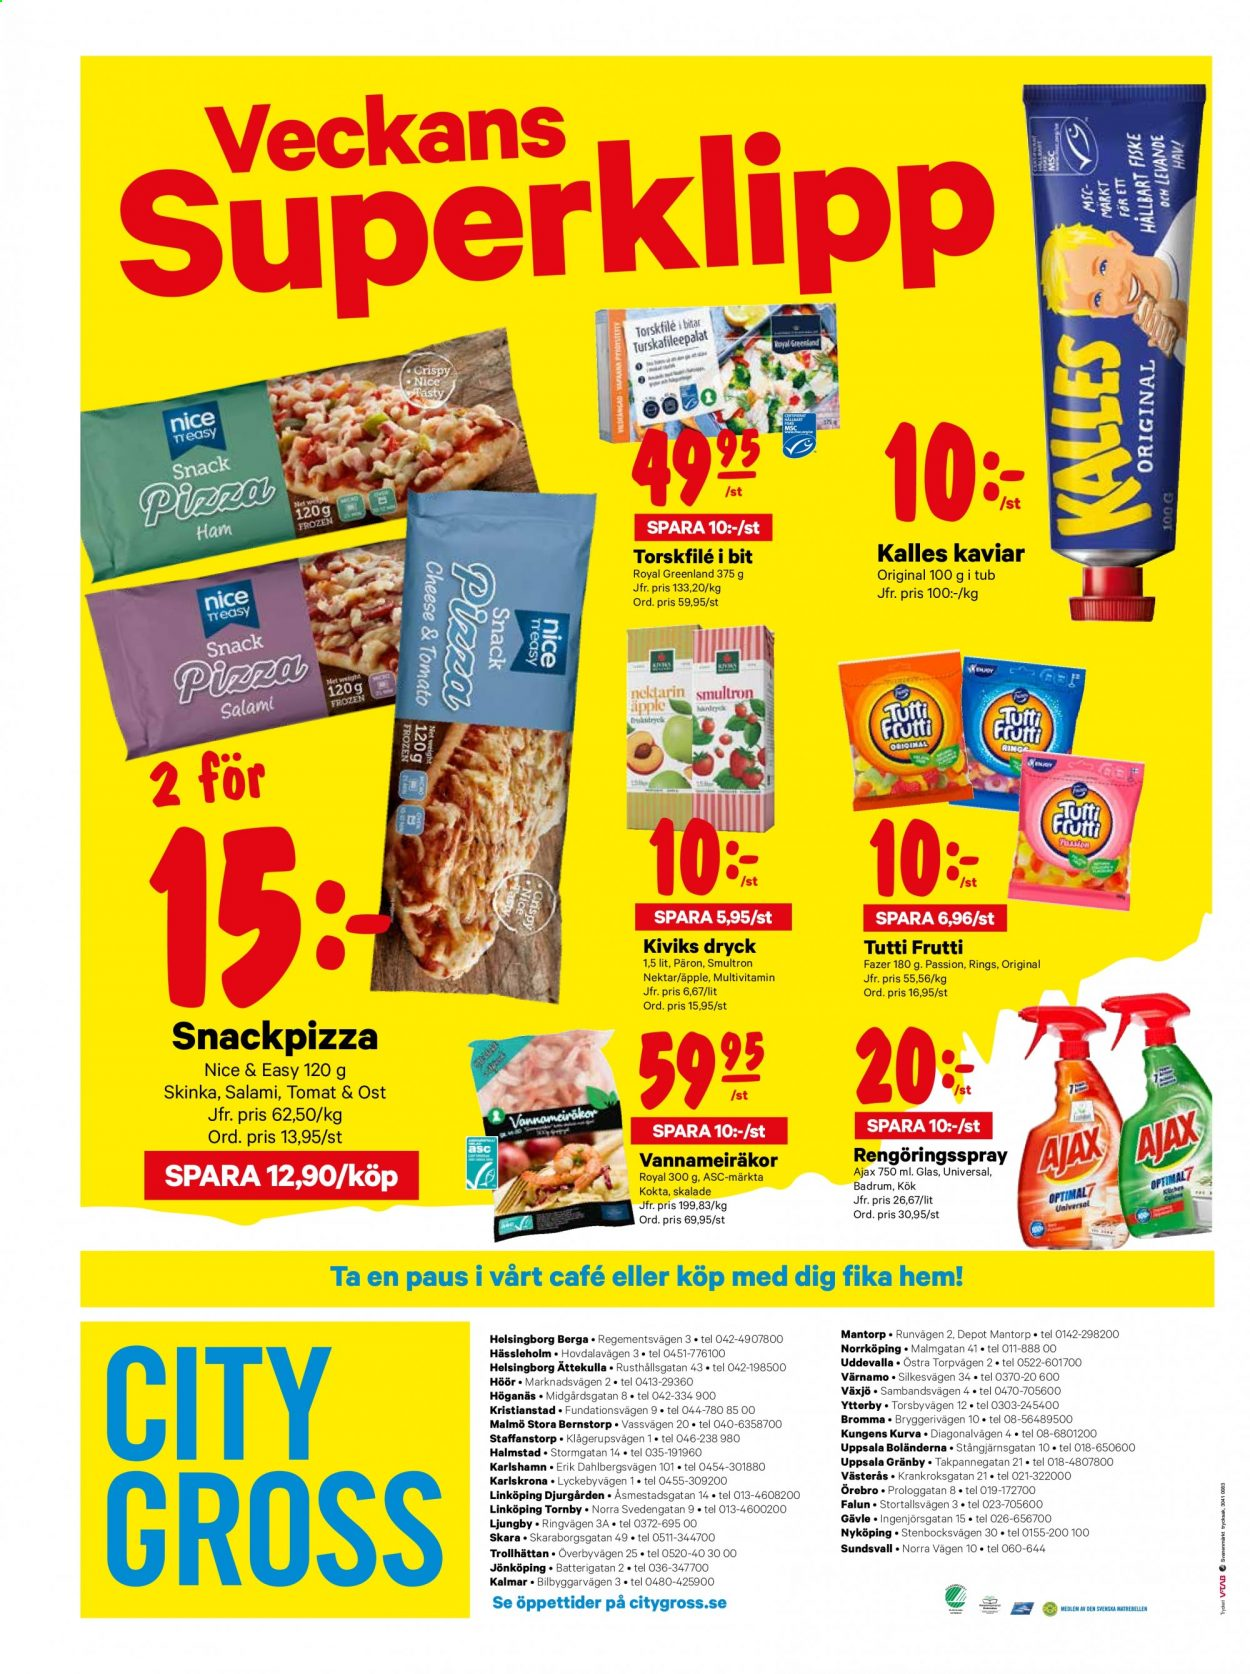 City Gross reklamblad - 6/7 2020 - 12/7 2020. Sida 16.